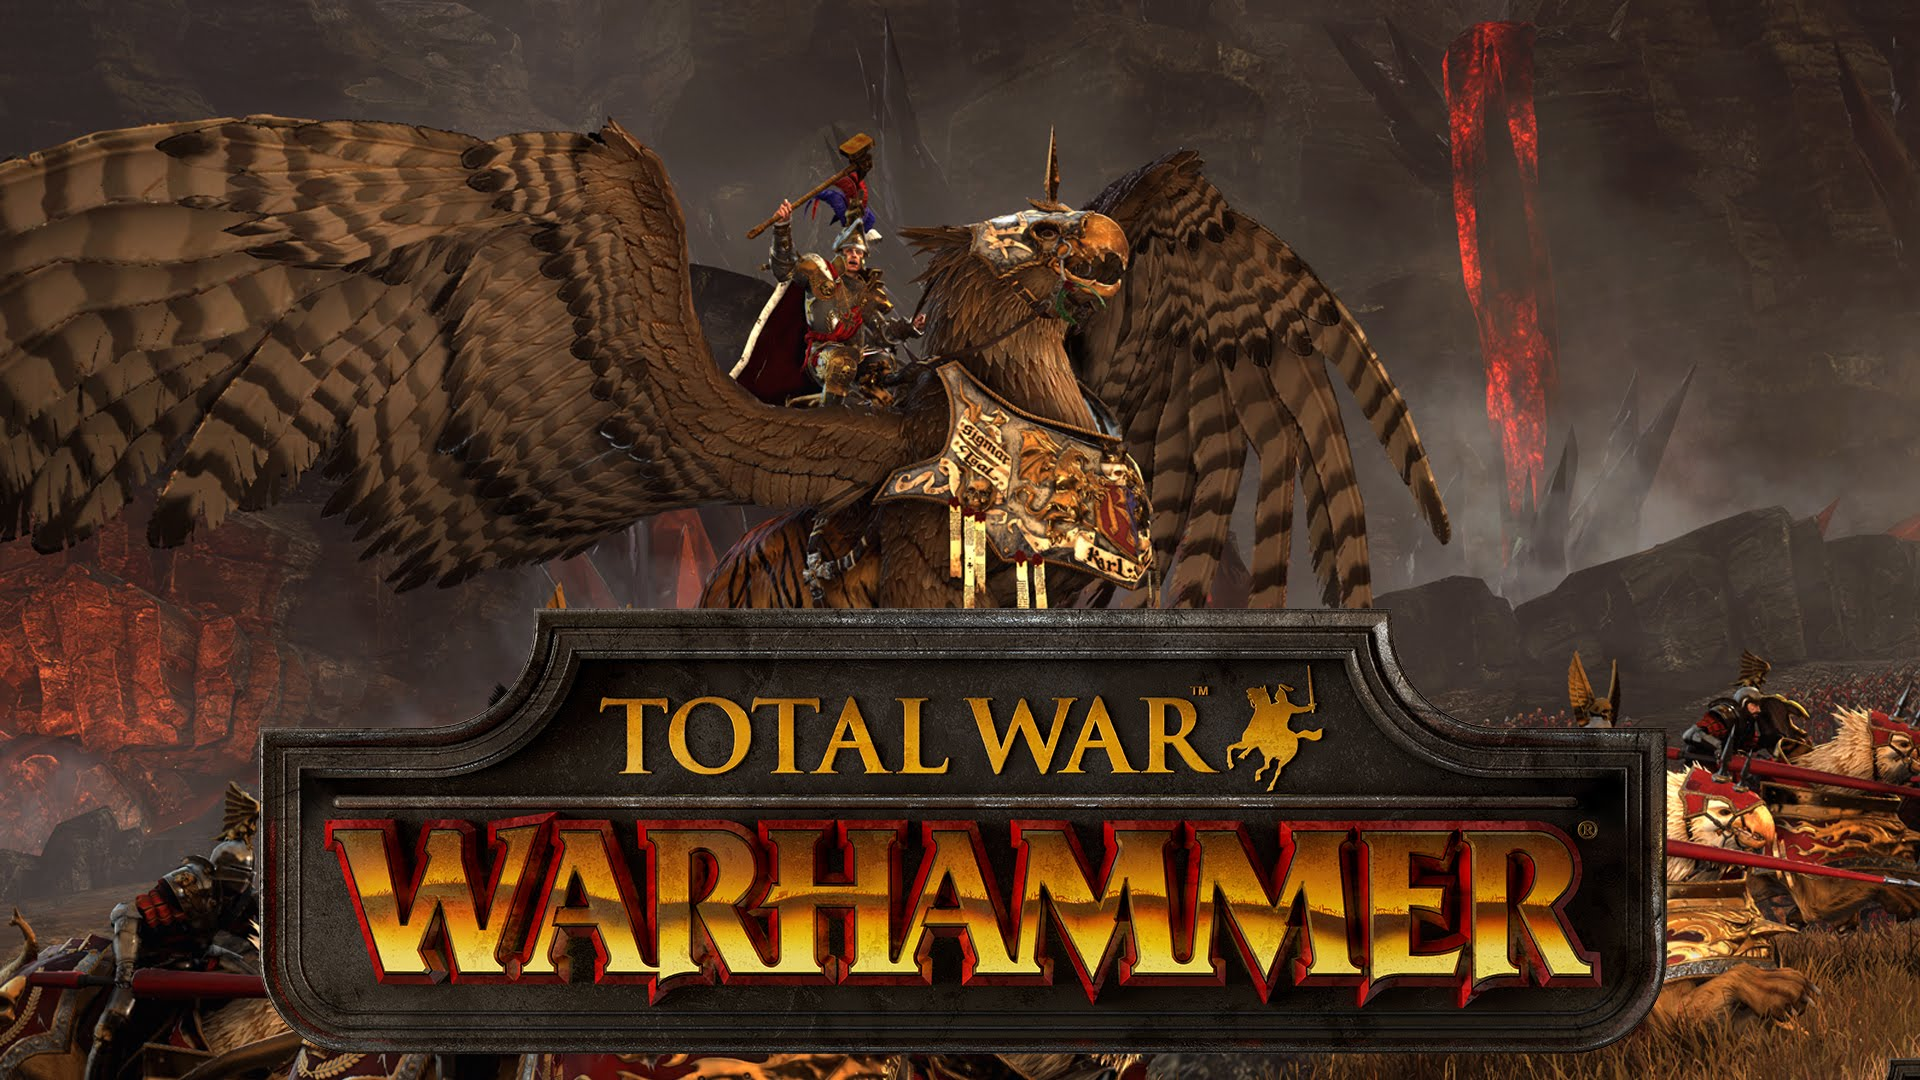 Total War Warhammer 21042016 image 1